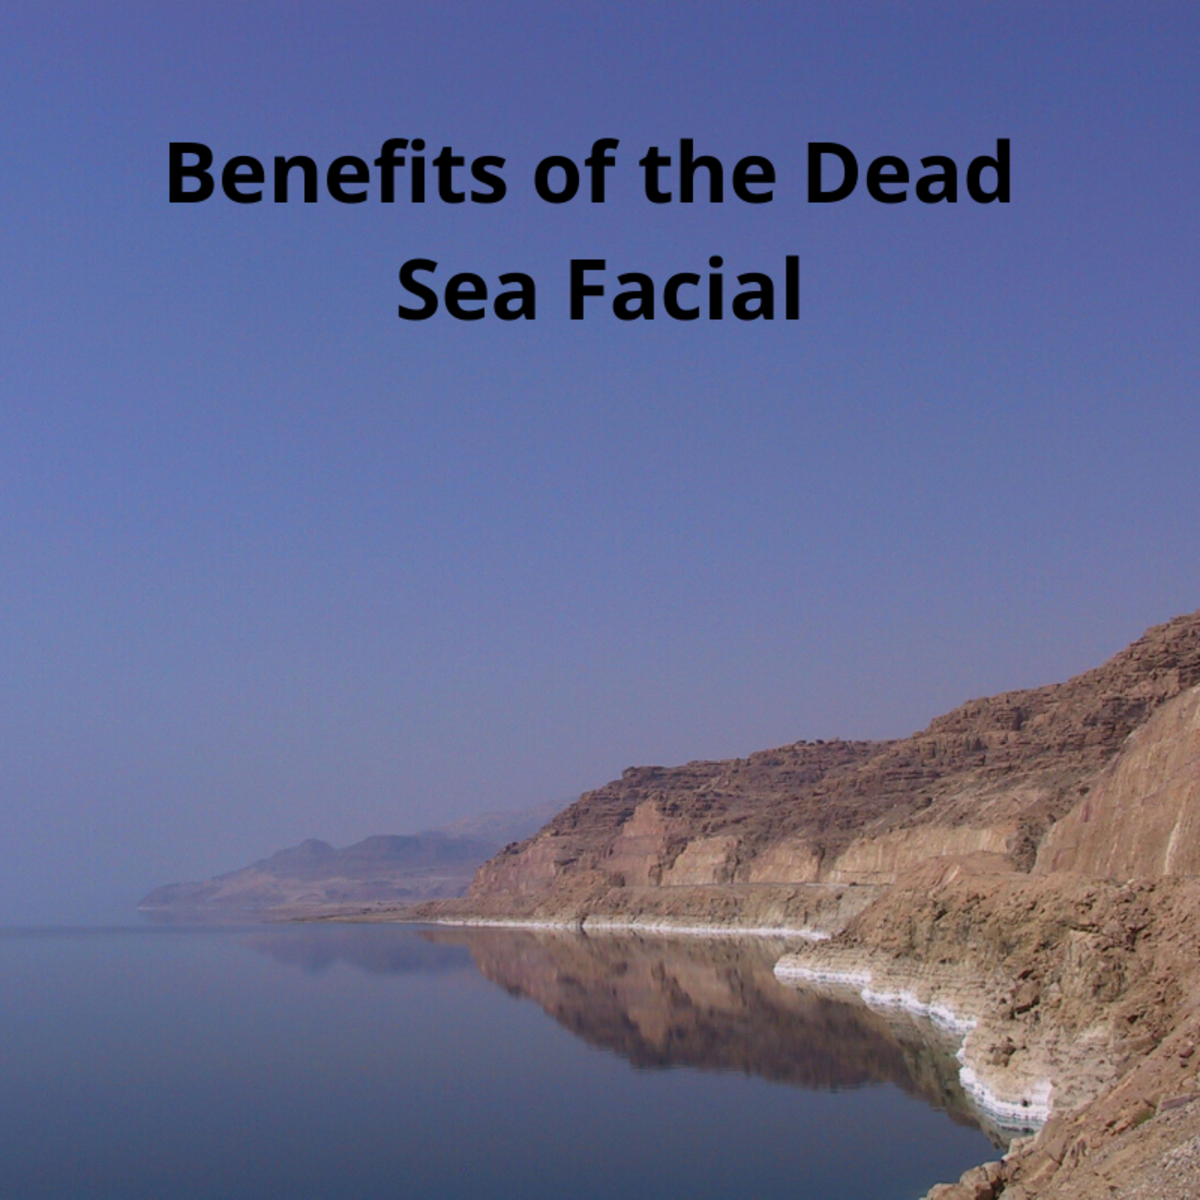 The benefits of the Dead Sea facial are plentiful. Read on to learn more!